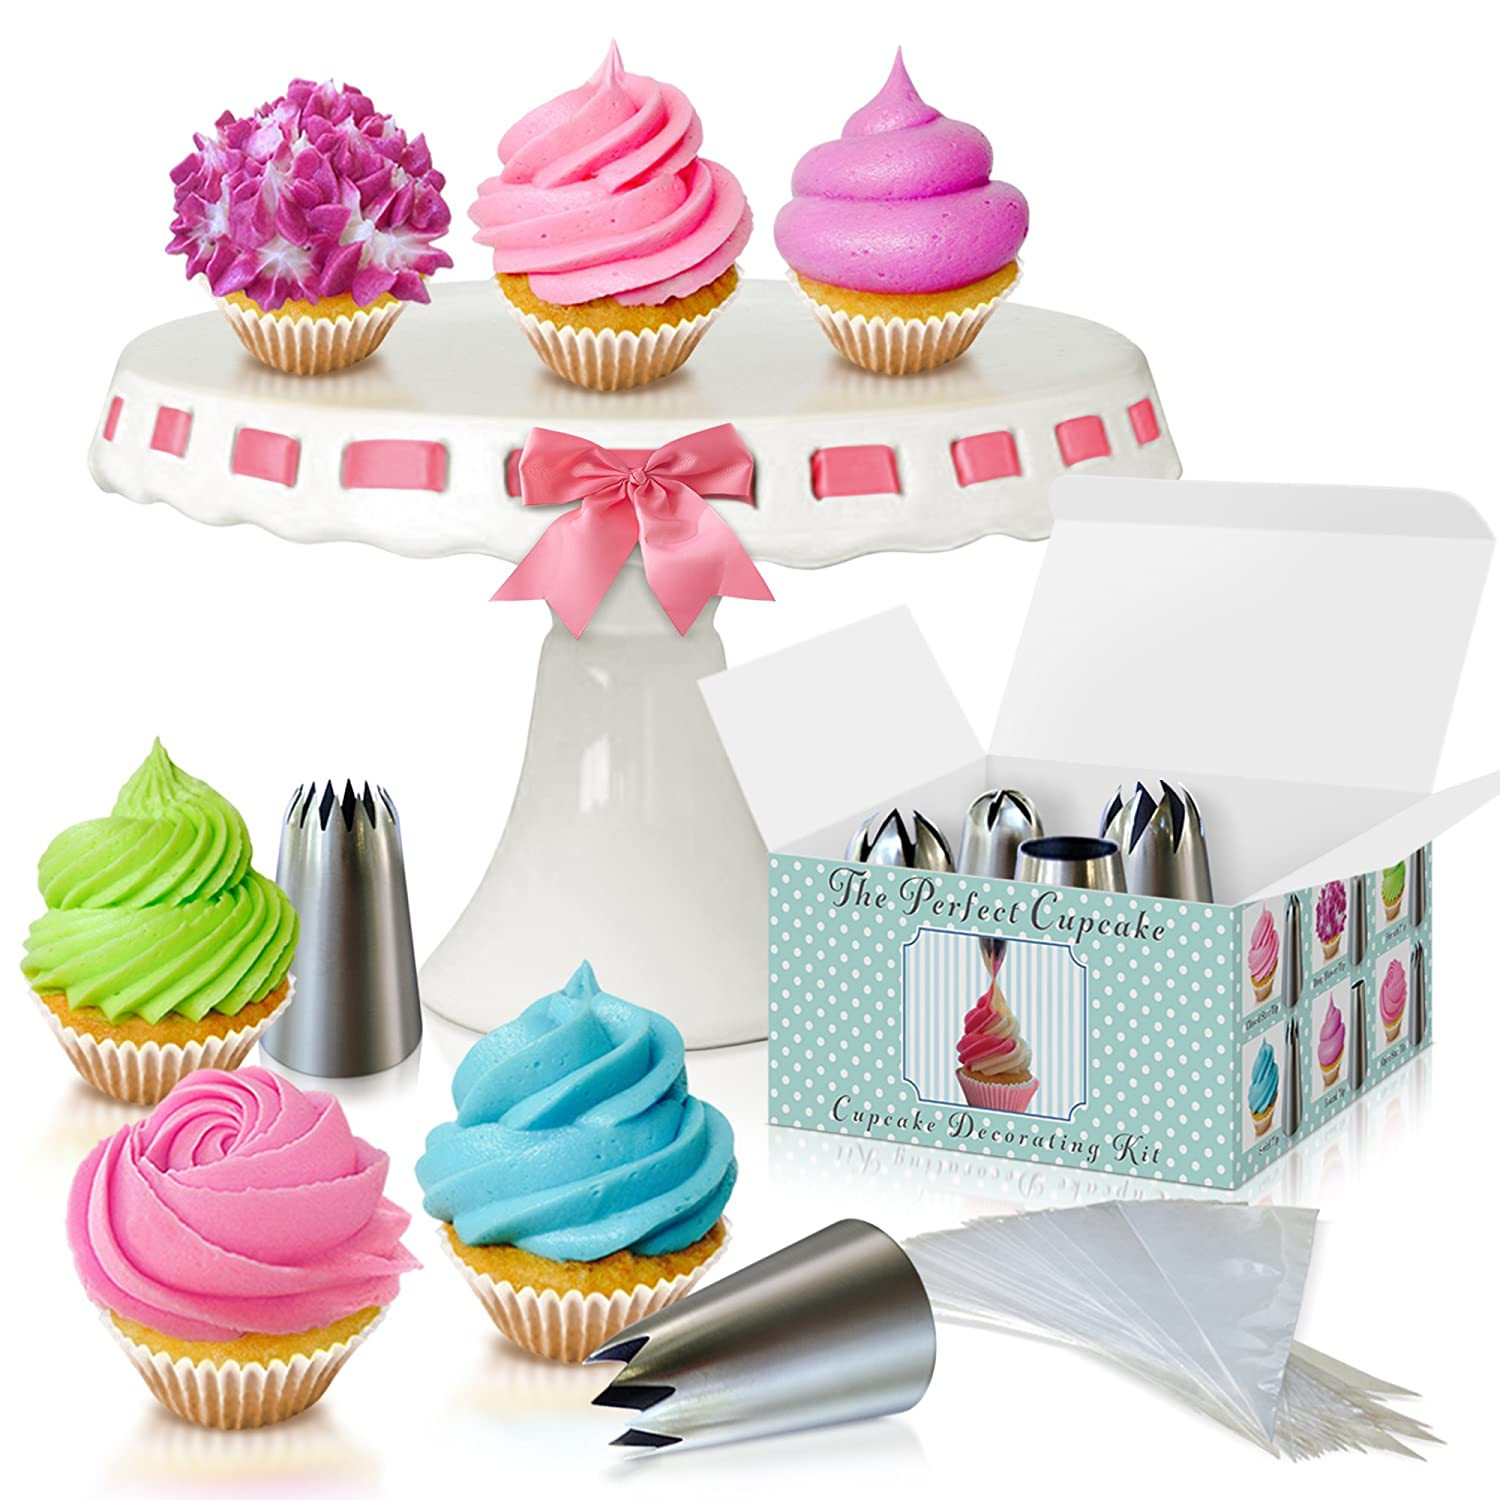 Amazon Cupcake Decorating Kit The Perfect Cupcake By